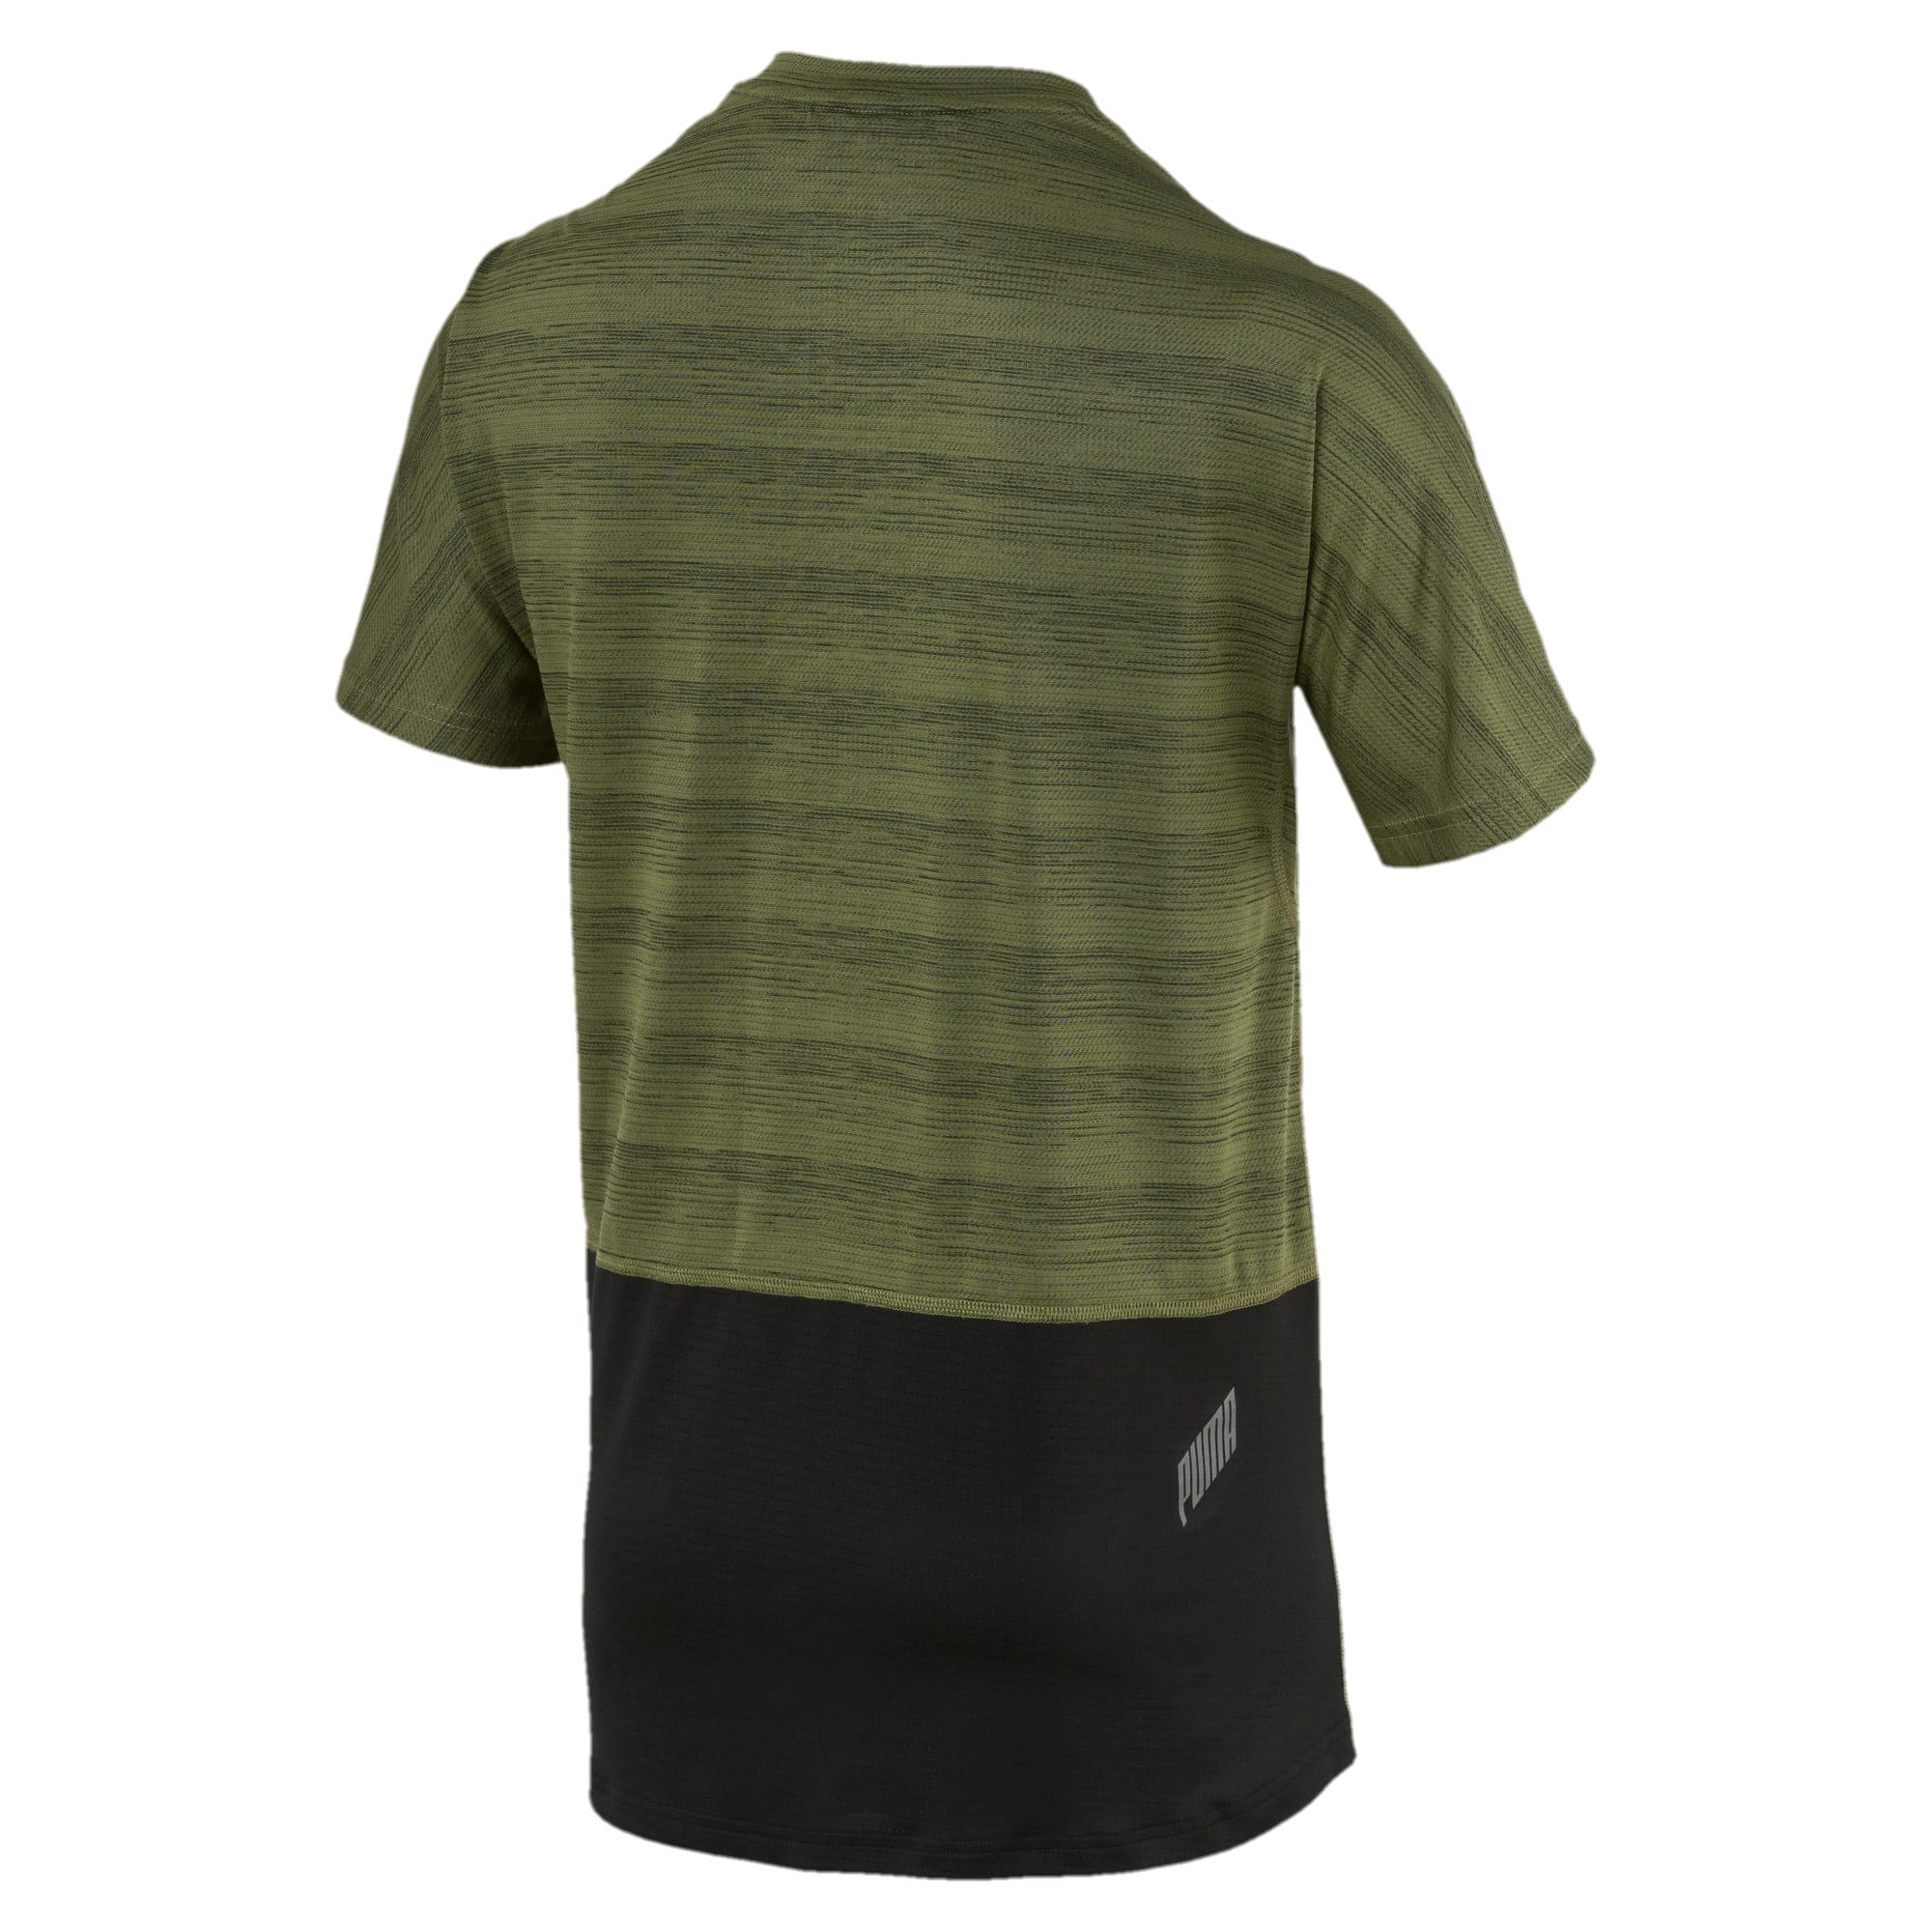 Thumbnail 2 of PACE Breeze Herren Running T-Shirt, Olivine-Puma Black, medium